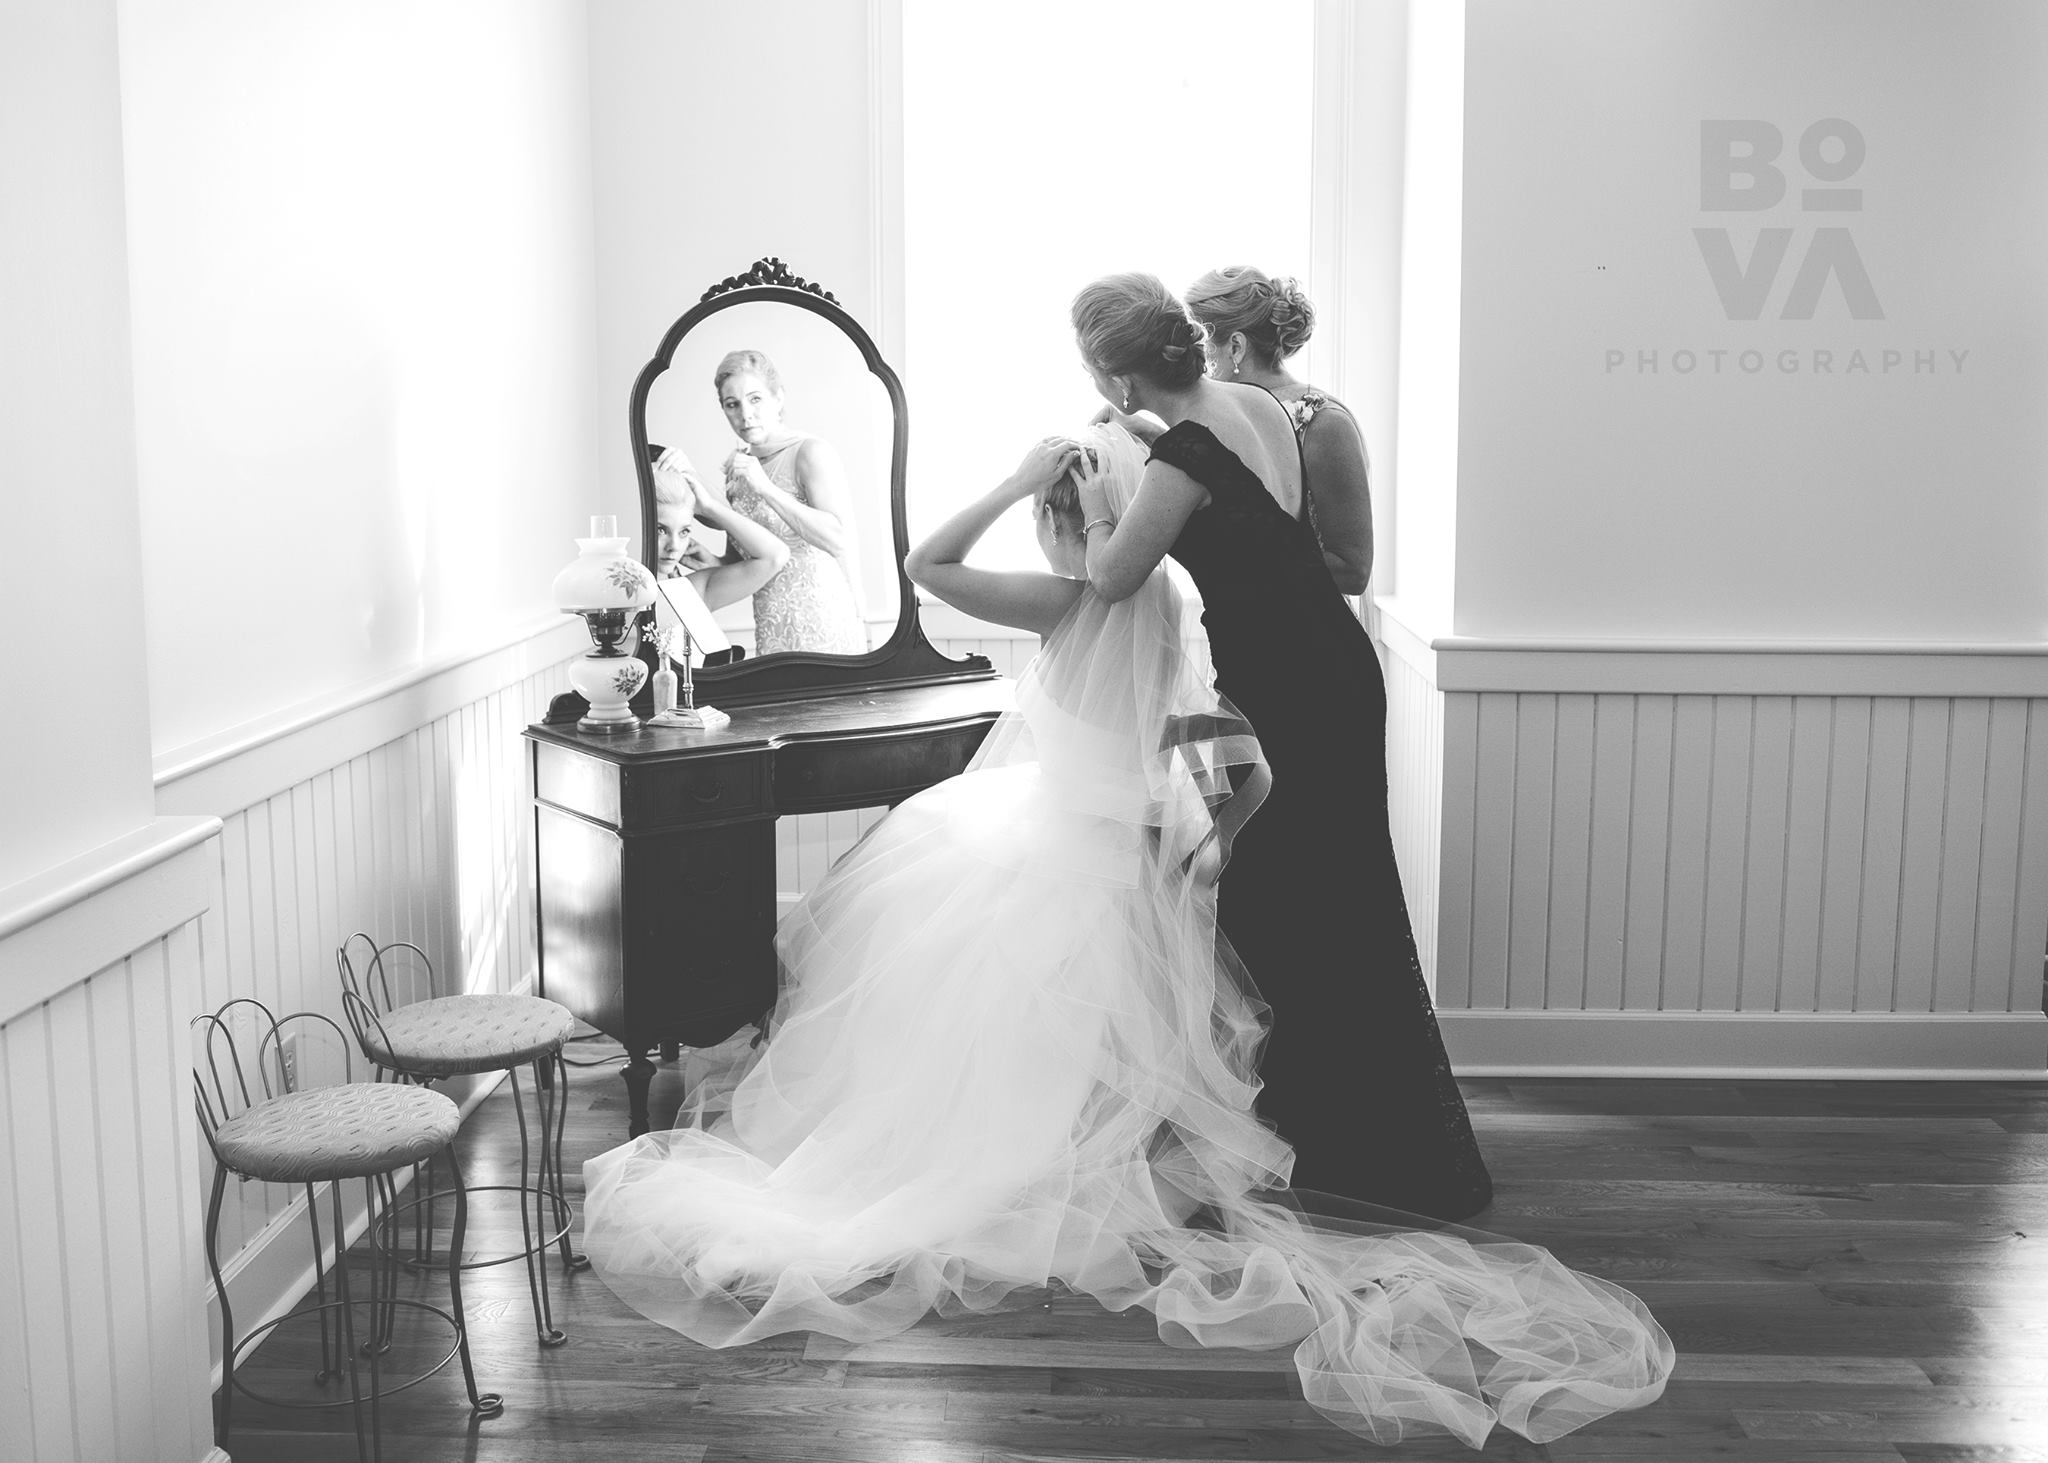 bova-photography-ivory-and-beau-bridal-boutique-savannah-weddings-savannah-wedding-historic-savannah-wedding-maise-blush-by-hayley-paige-hayley-paige-ballgown-savannah-wedding-planner-5.jpg